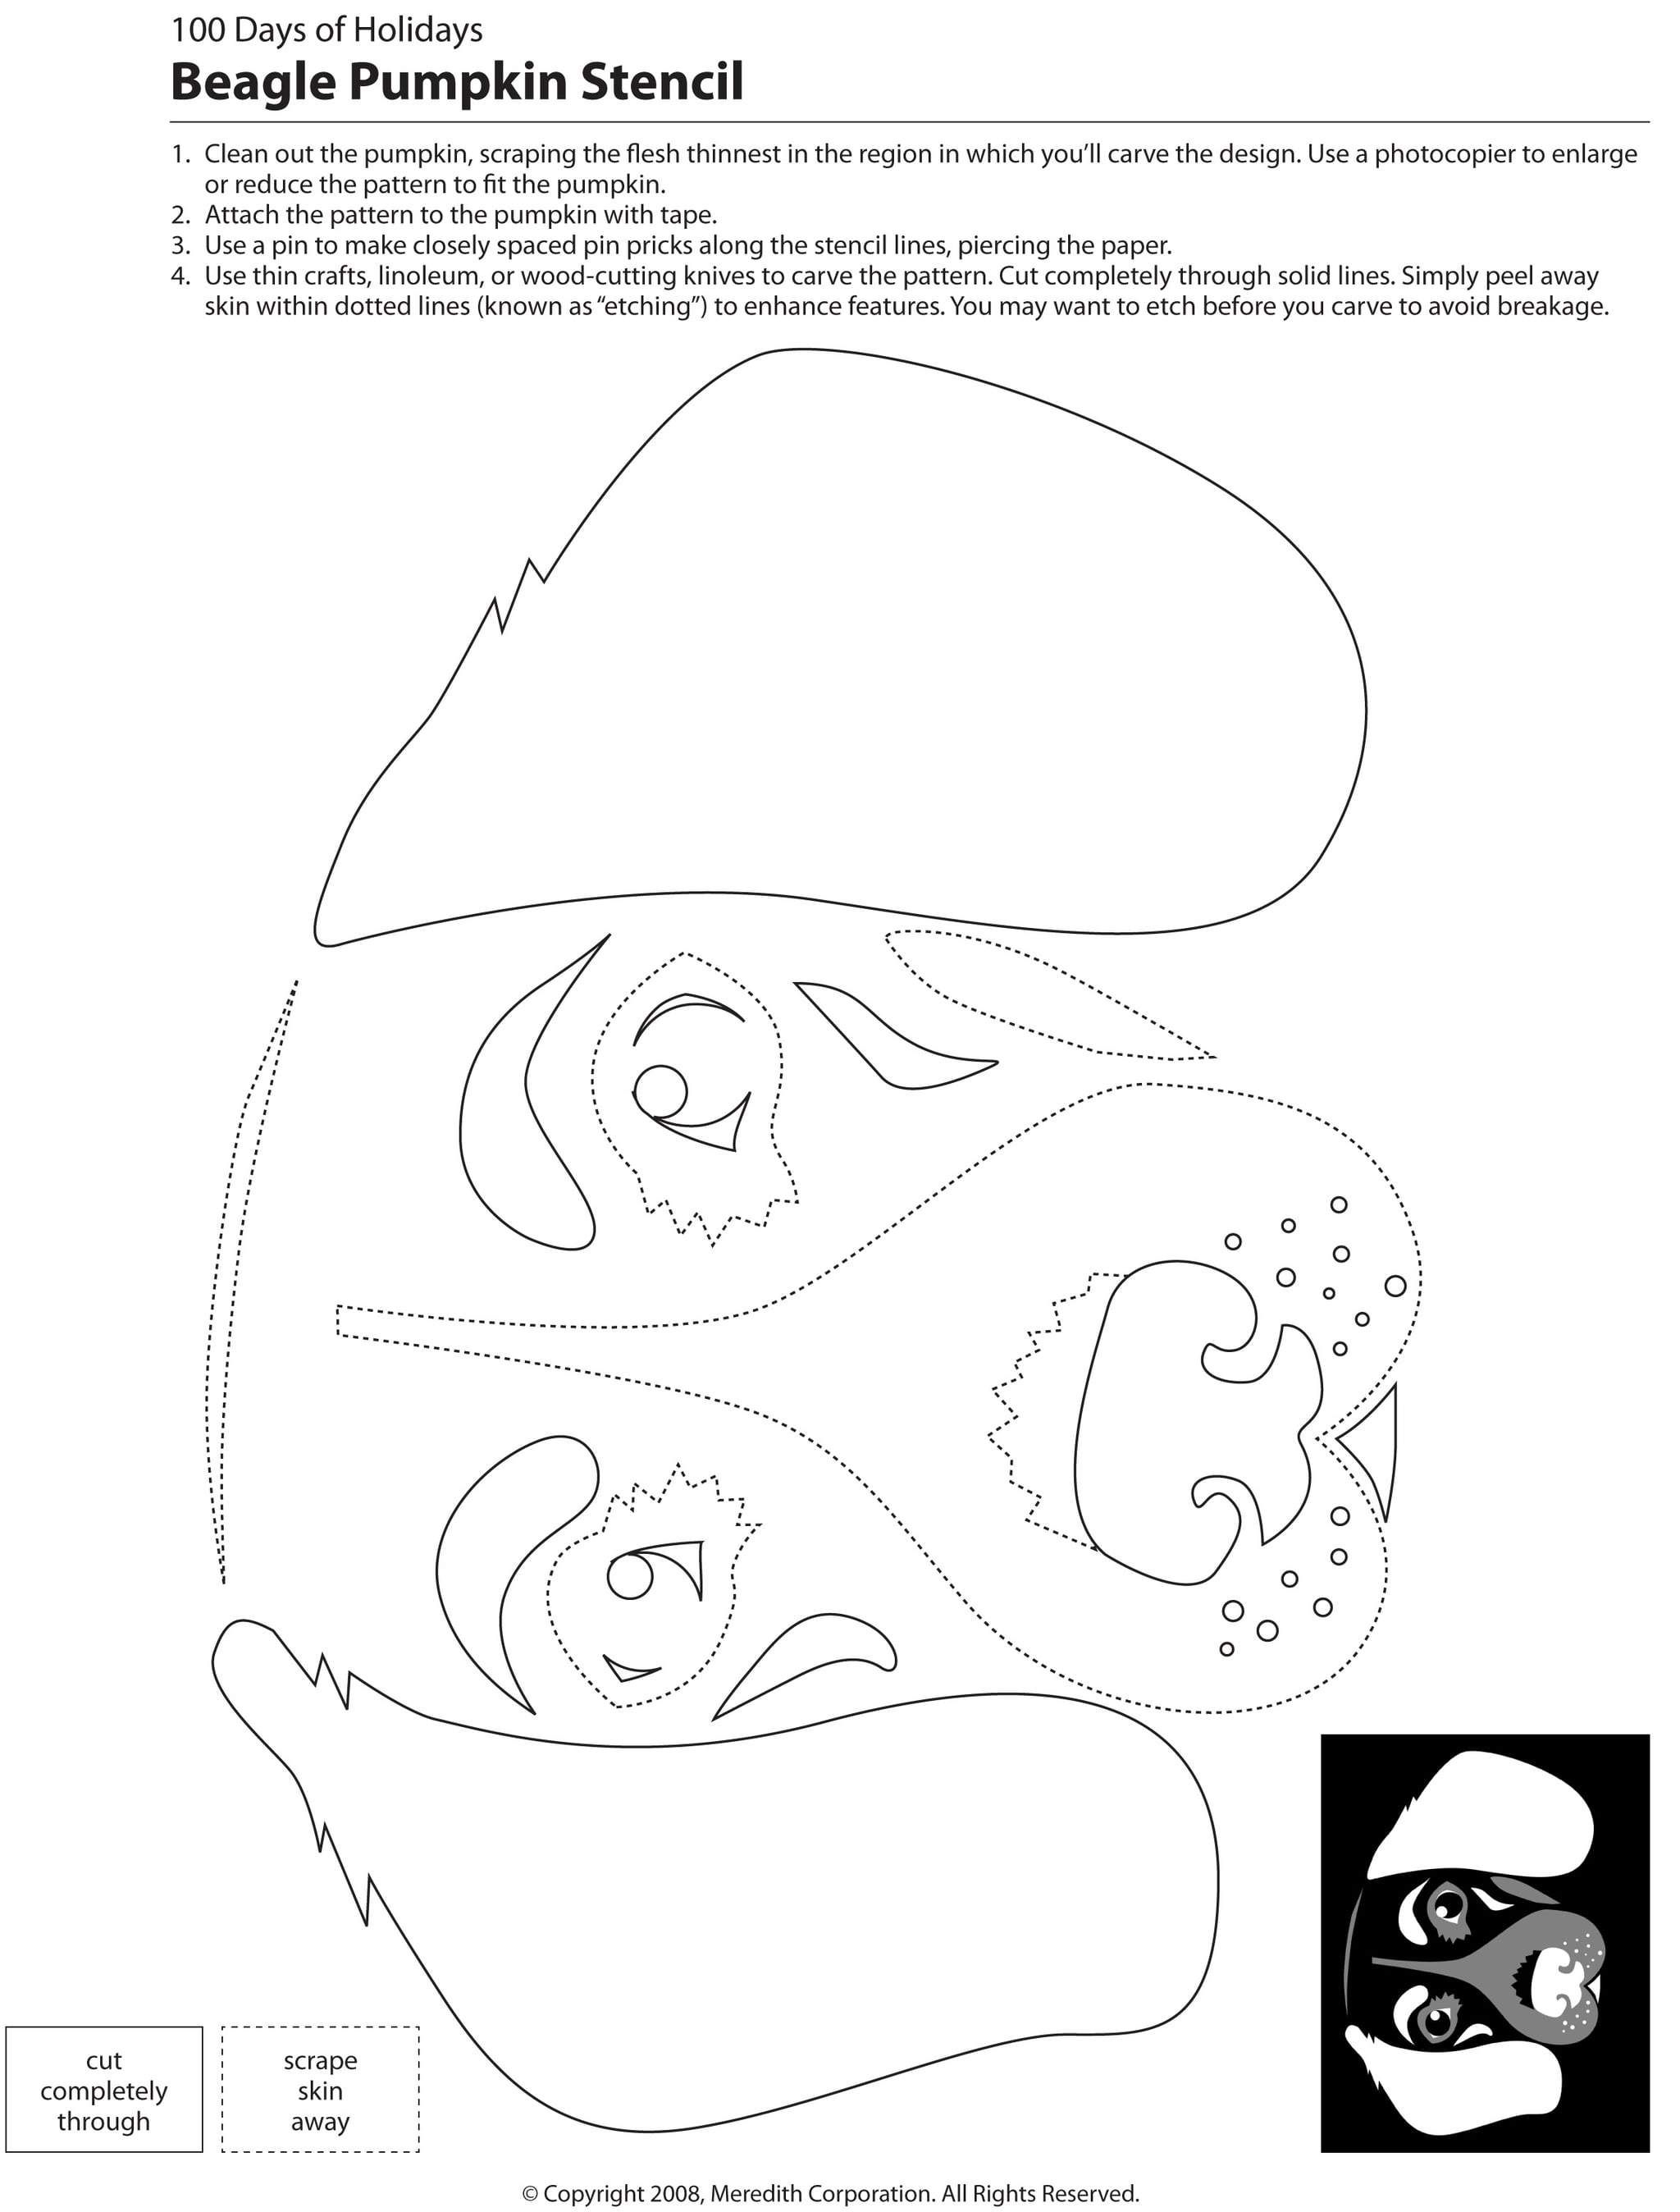 22 Free Pumpkin Carving Dog Stencils (Breed Specific) | Dogs - Free Printable Pumpkin Carving Templates Dog